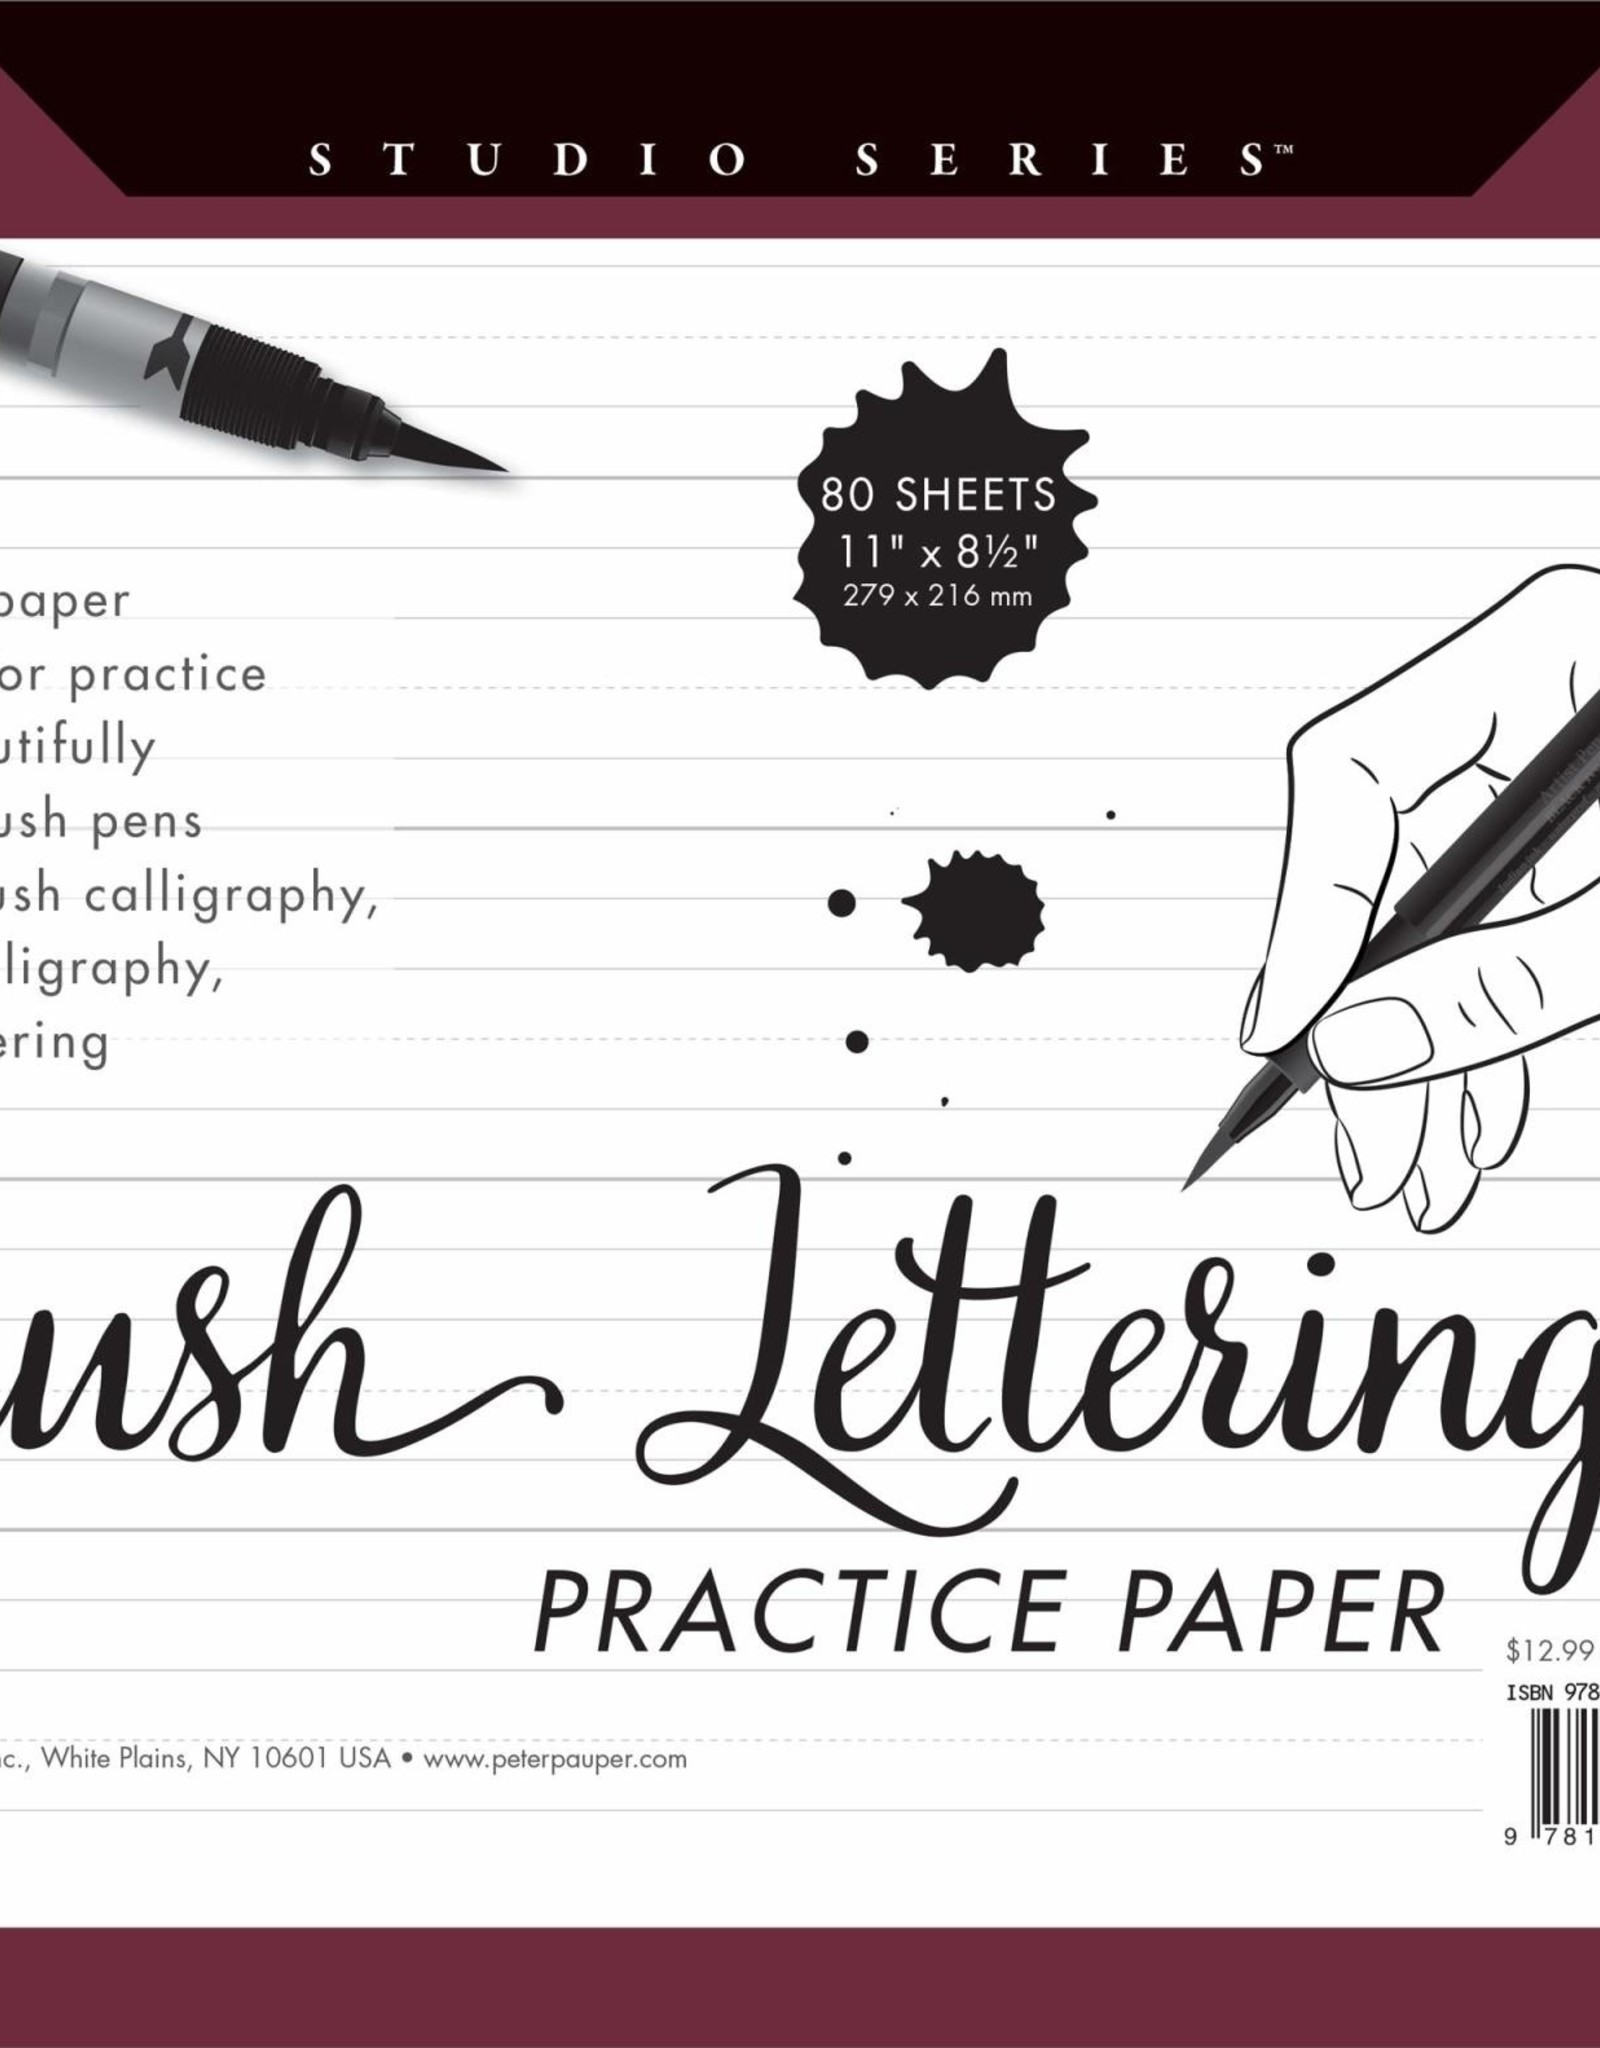 Peter Pauper Press, Inc. Peter Pauper Studio Series Brush Lettering Practice Paper